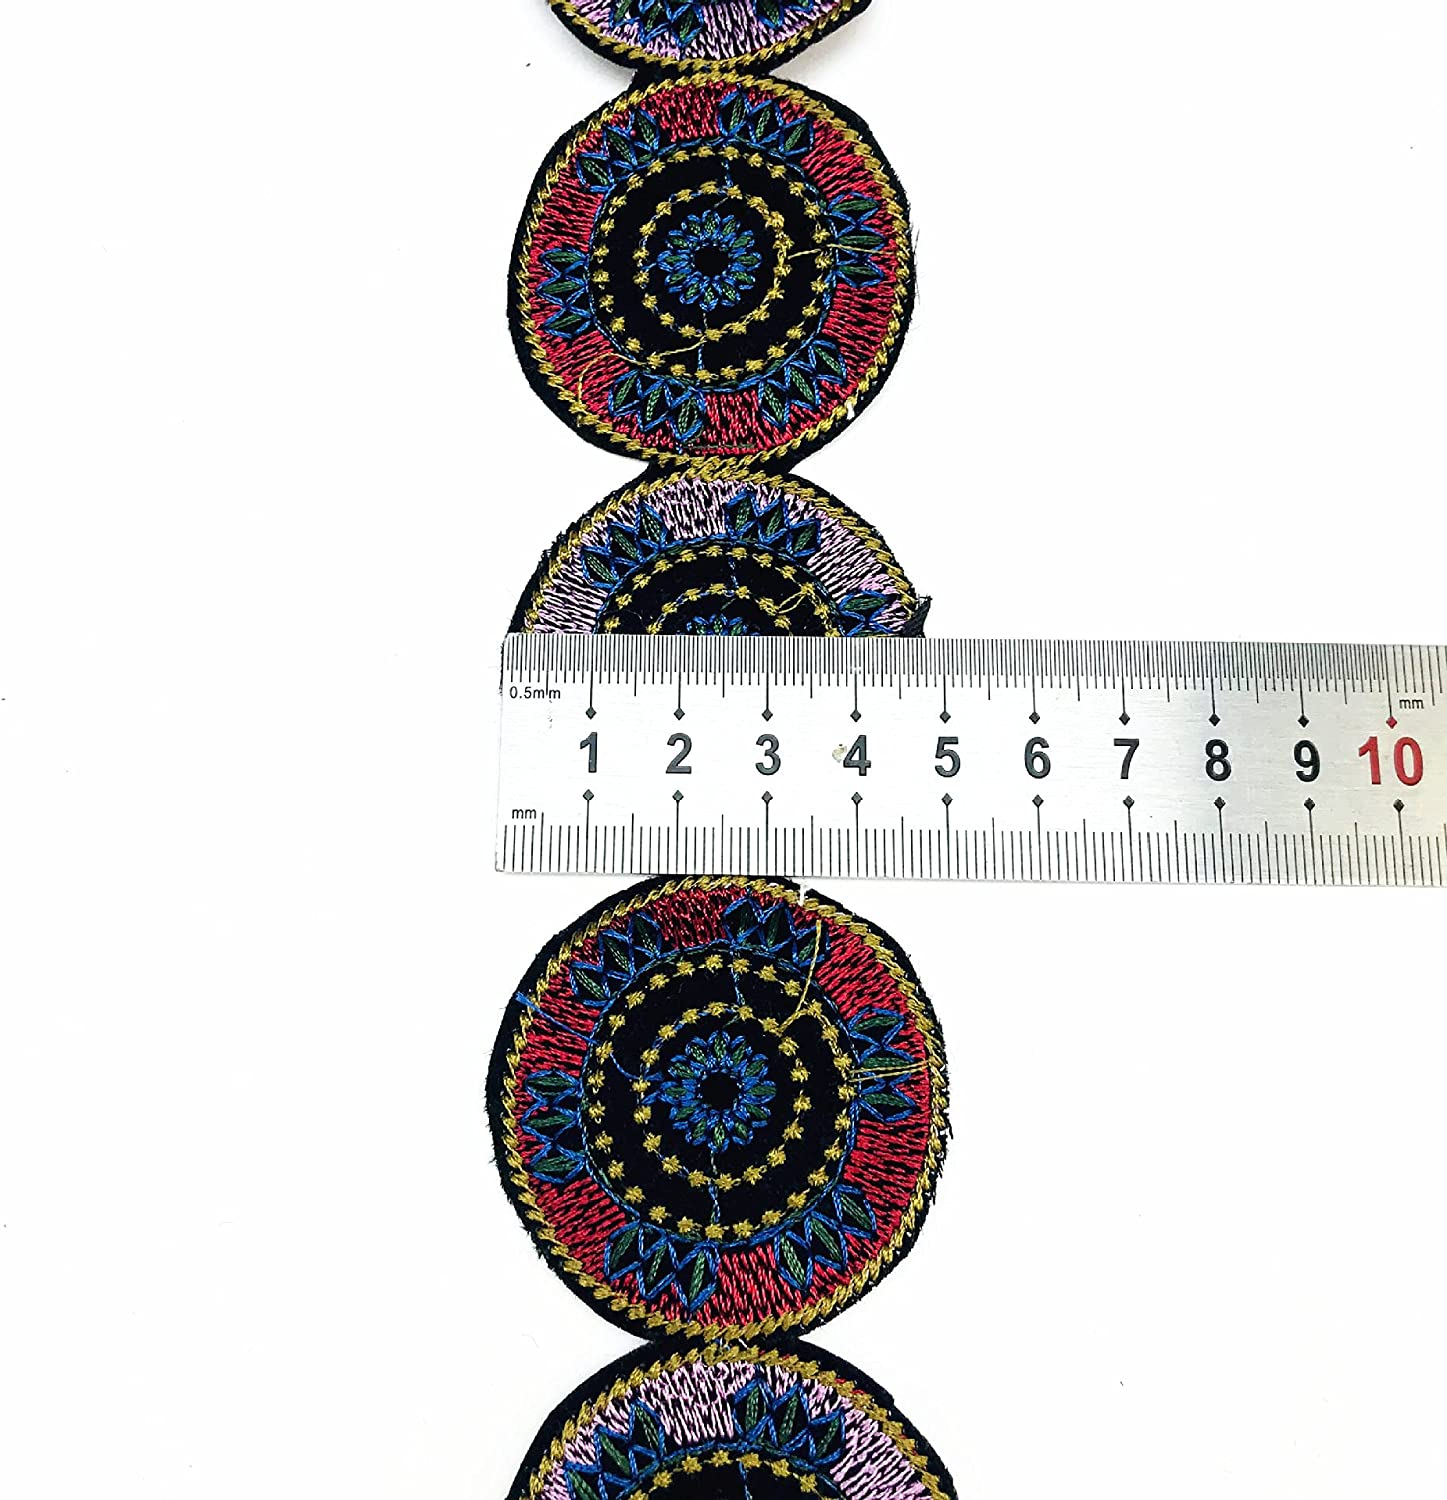 1 Yard Vintage 3D 2021 autumn and winter new Round Embroidery Trim Embroid Lace outlet Ribbon Boho